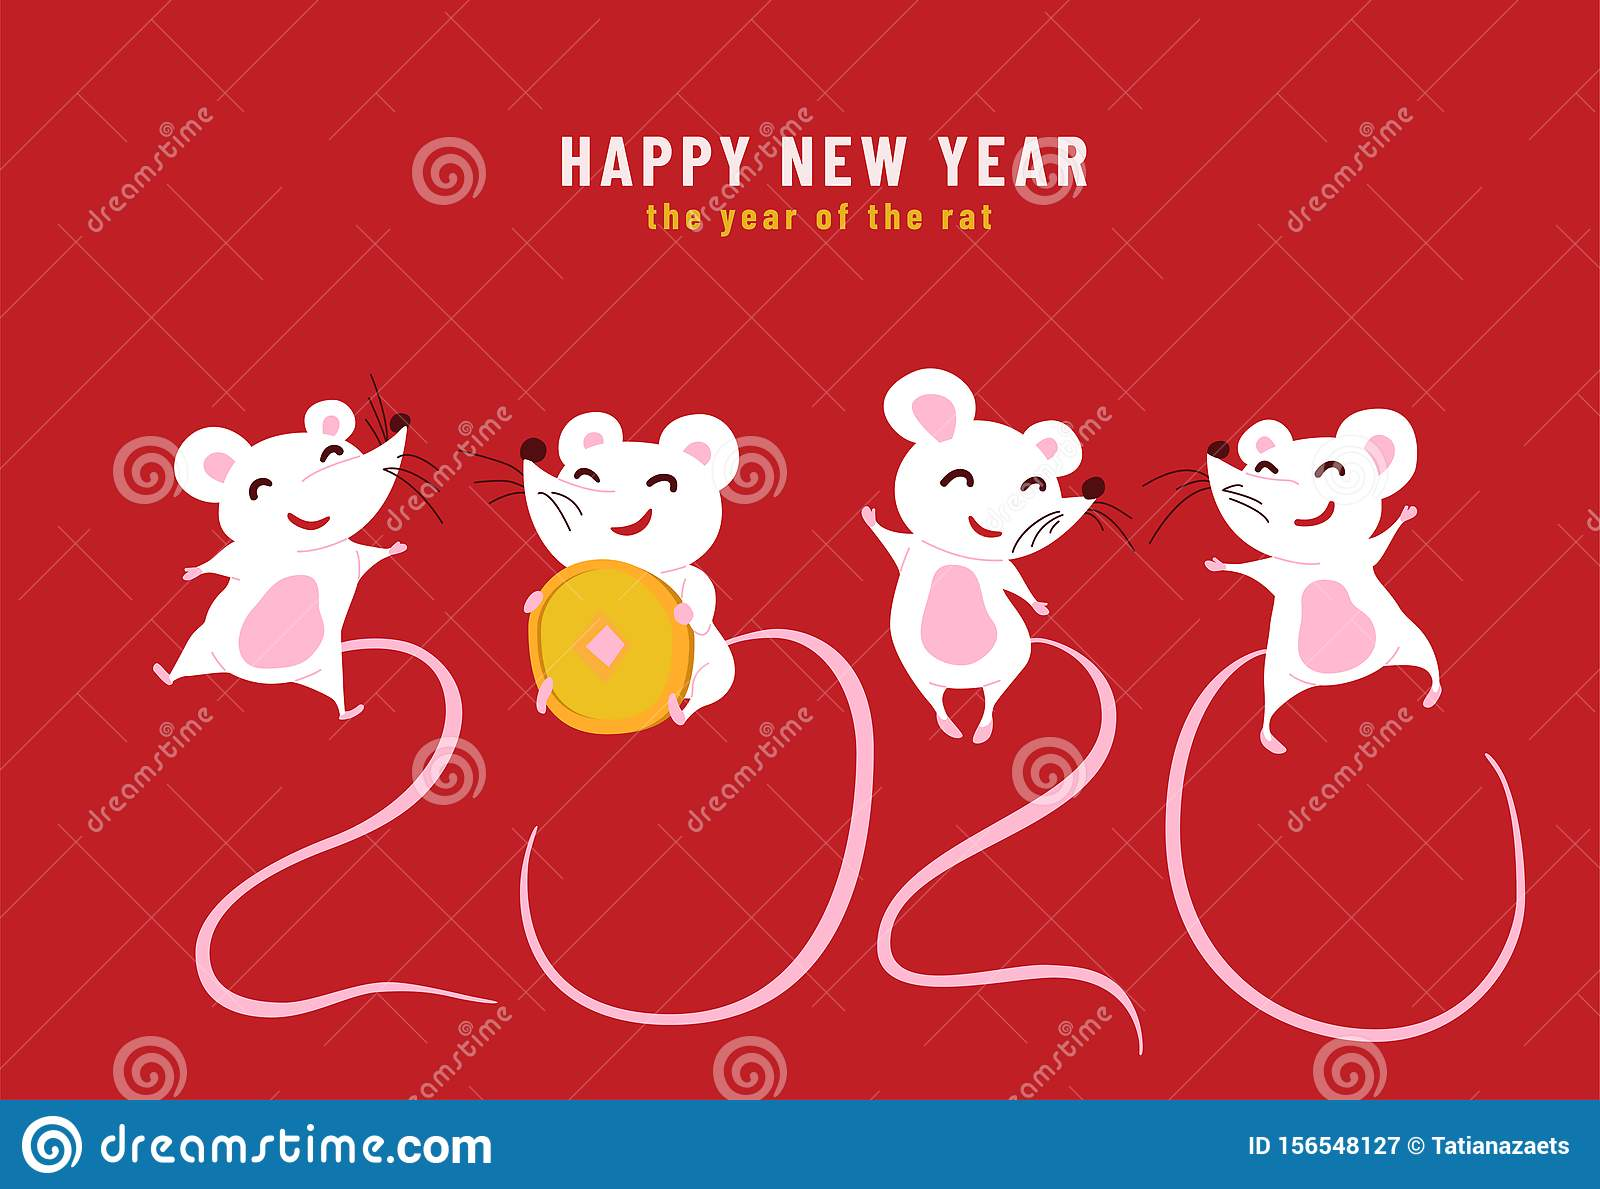 2020 Happy Chinese New Year The Year Of The Rat Design